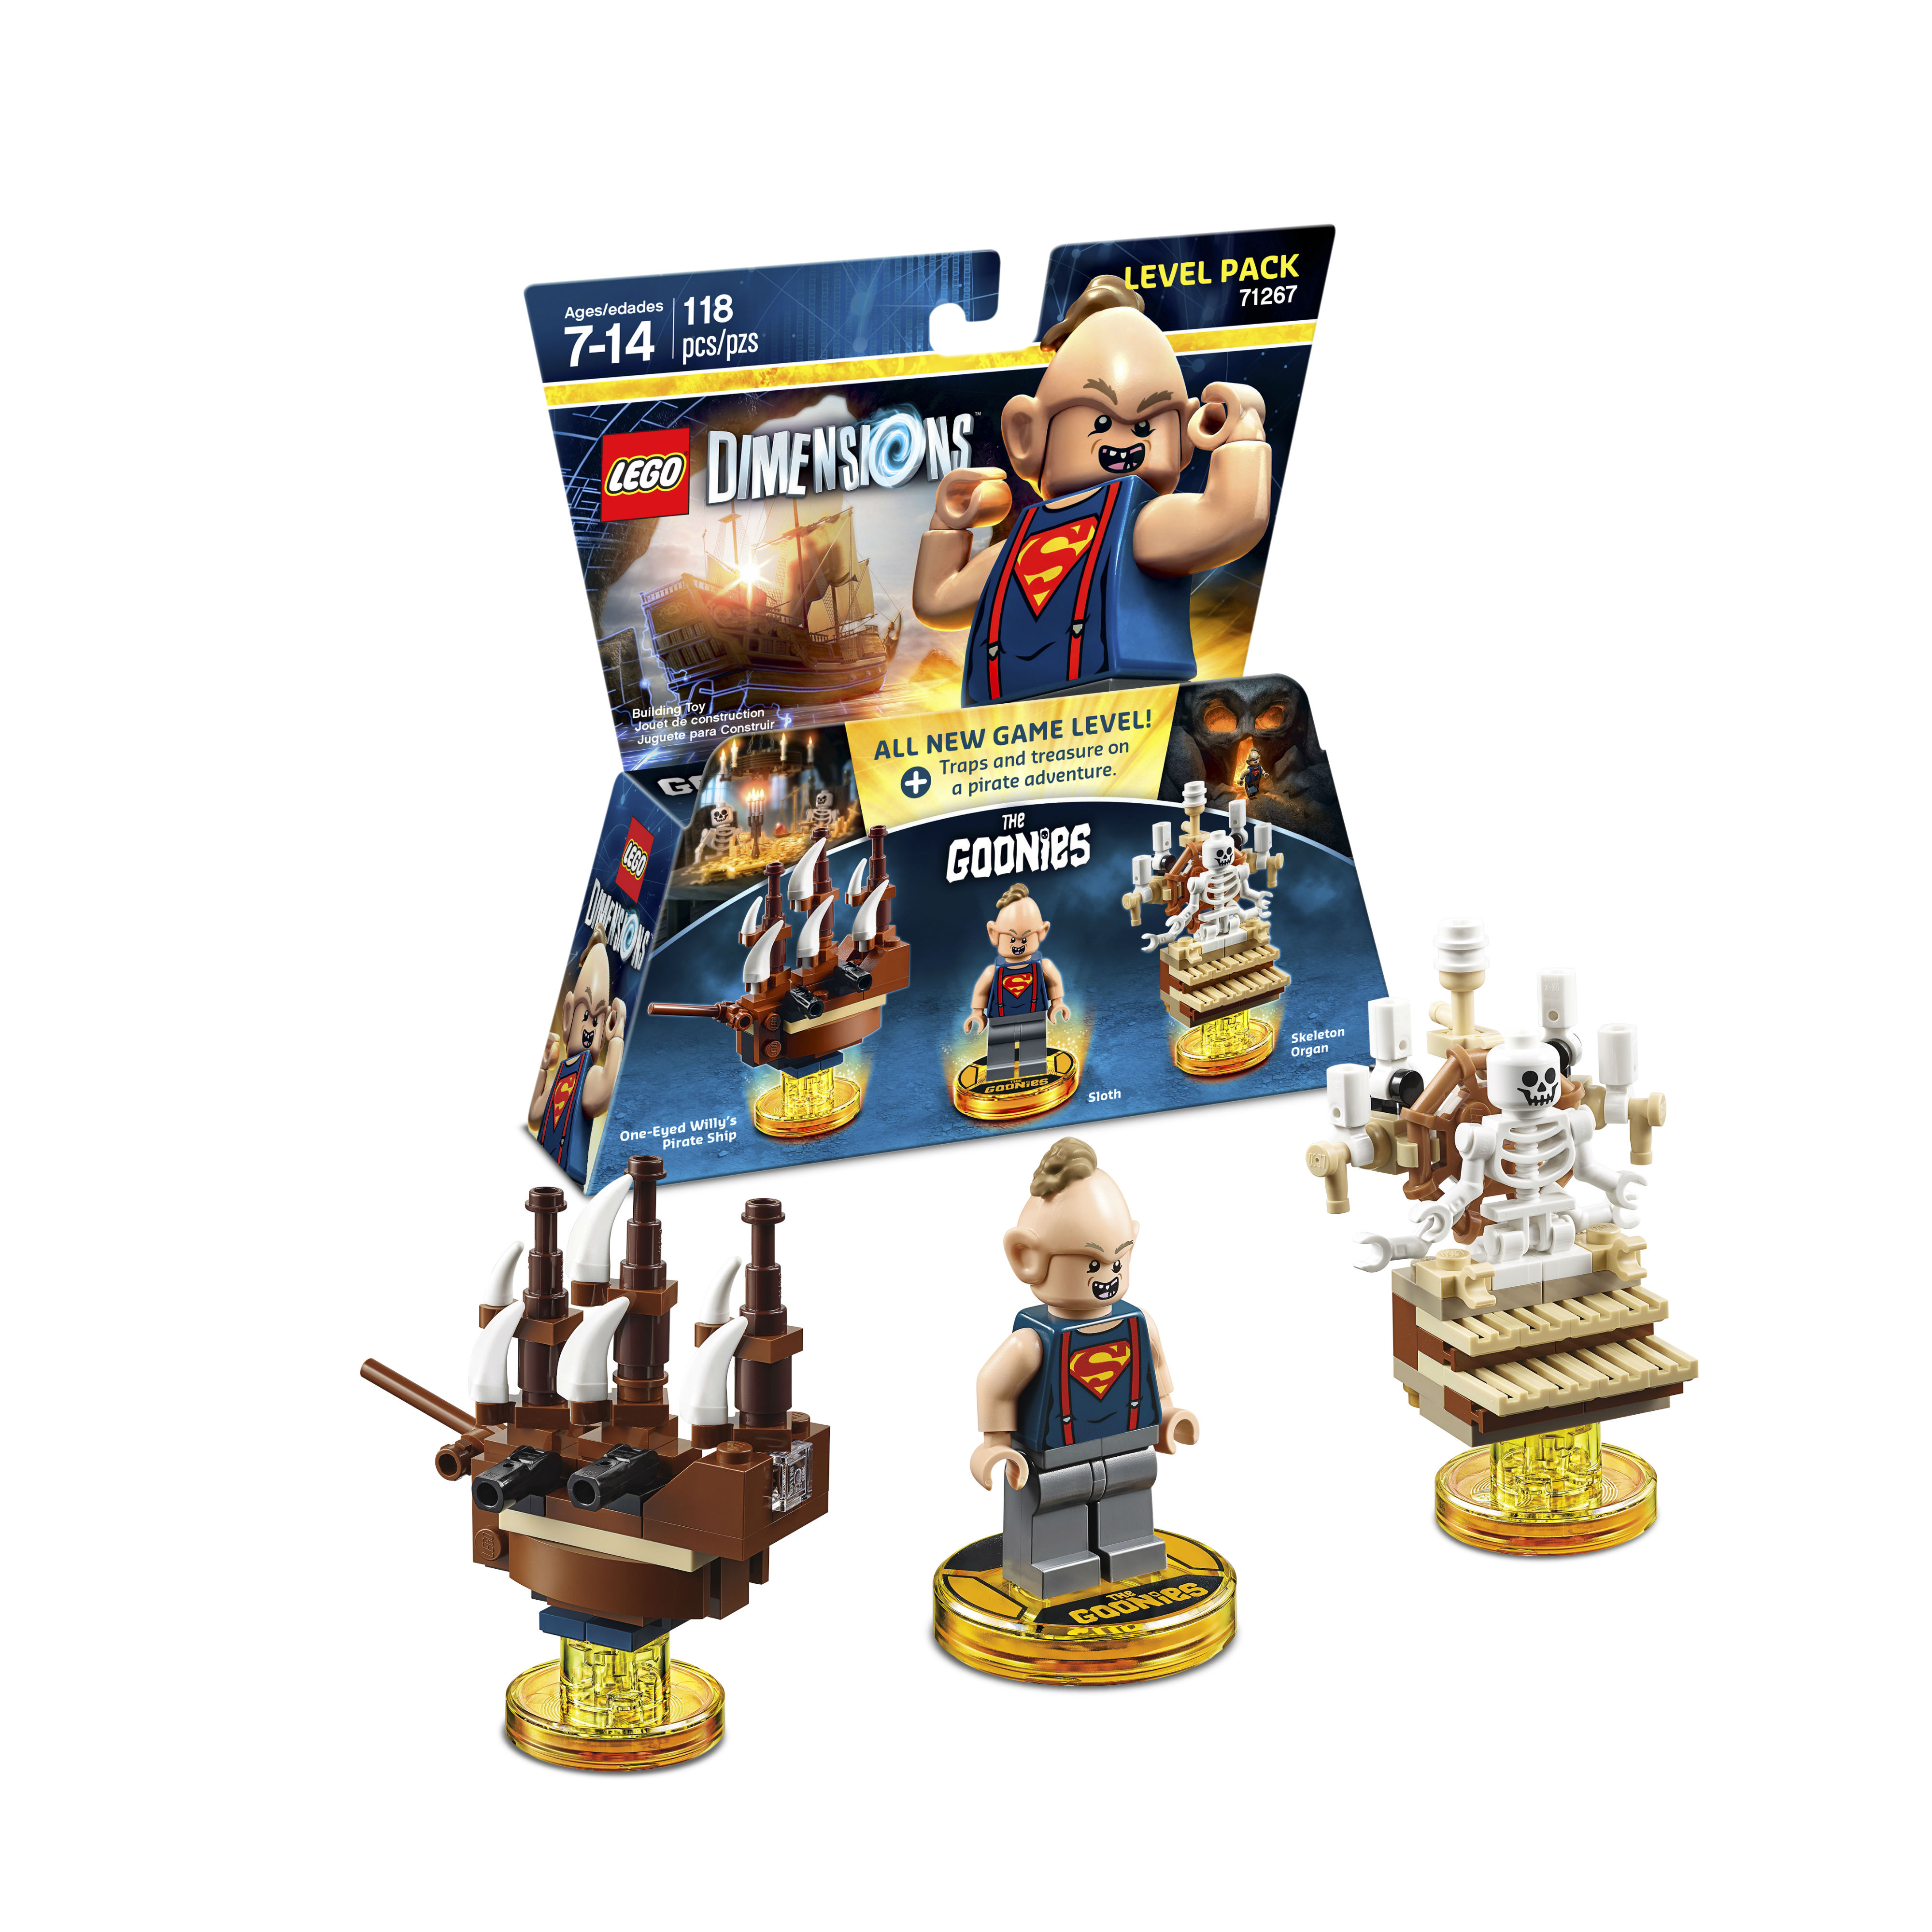 lego dimensions wave 8 revealed! releasing may 9th (images, Skeleton